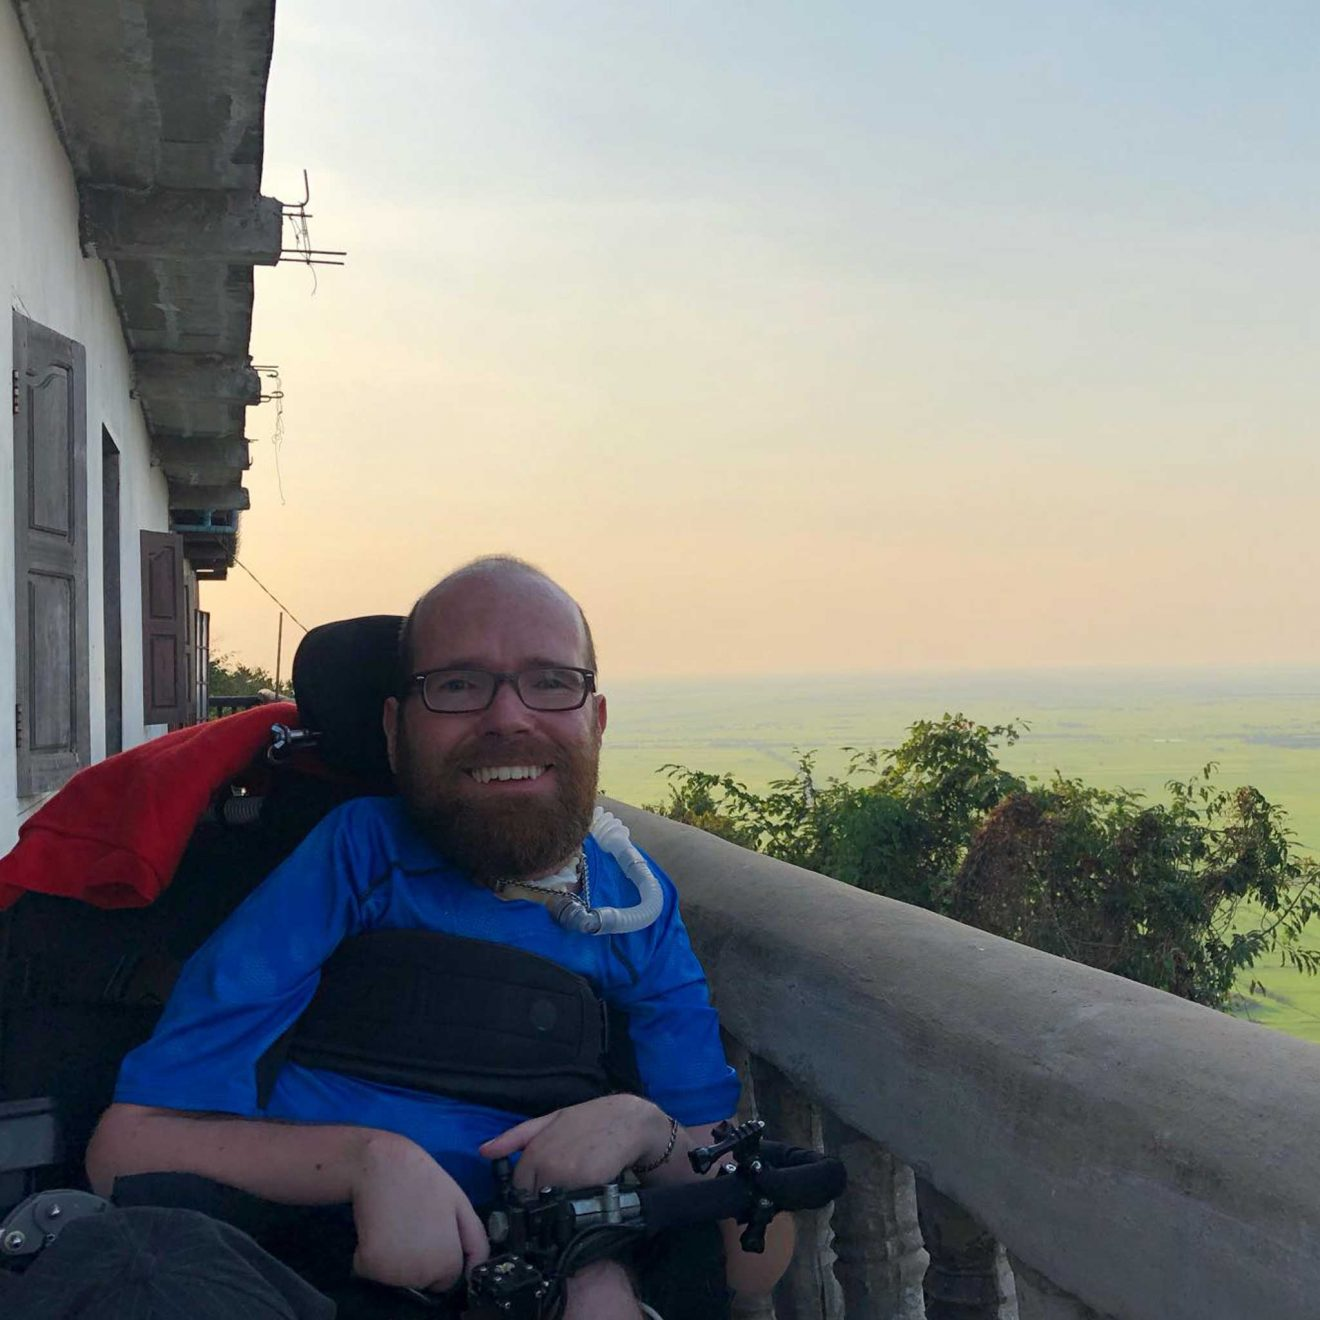 Ean enjoying the view from his hotel's balcony in Cambodia